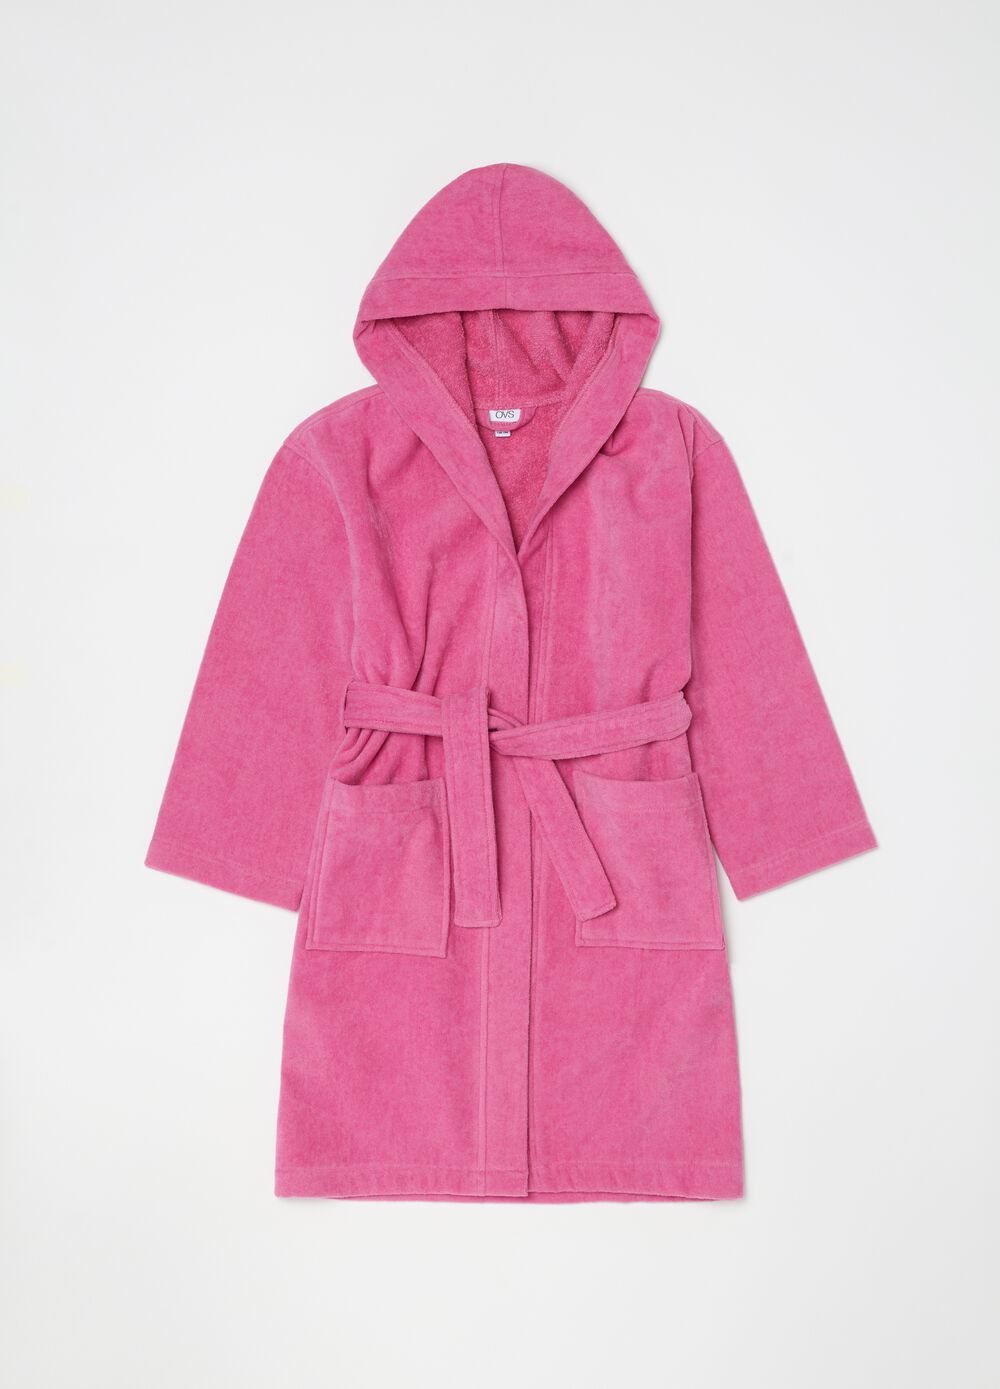 Bathrobe in 100% organic cotton